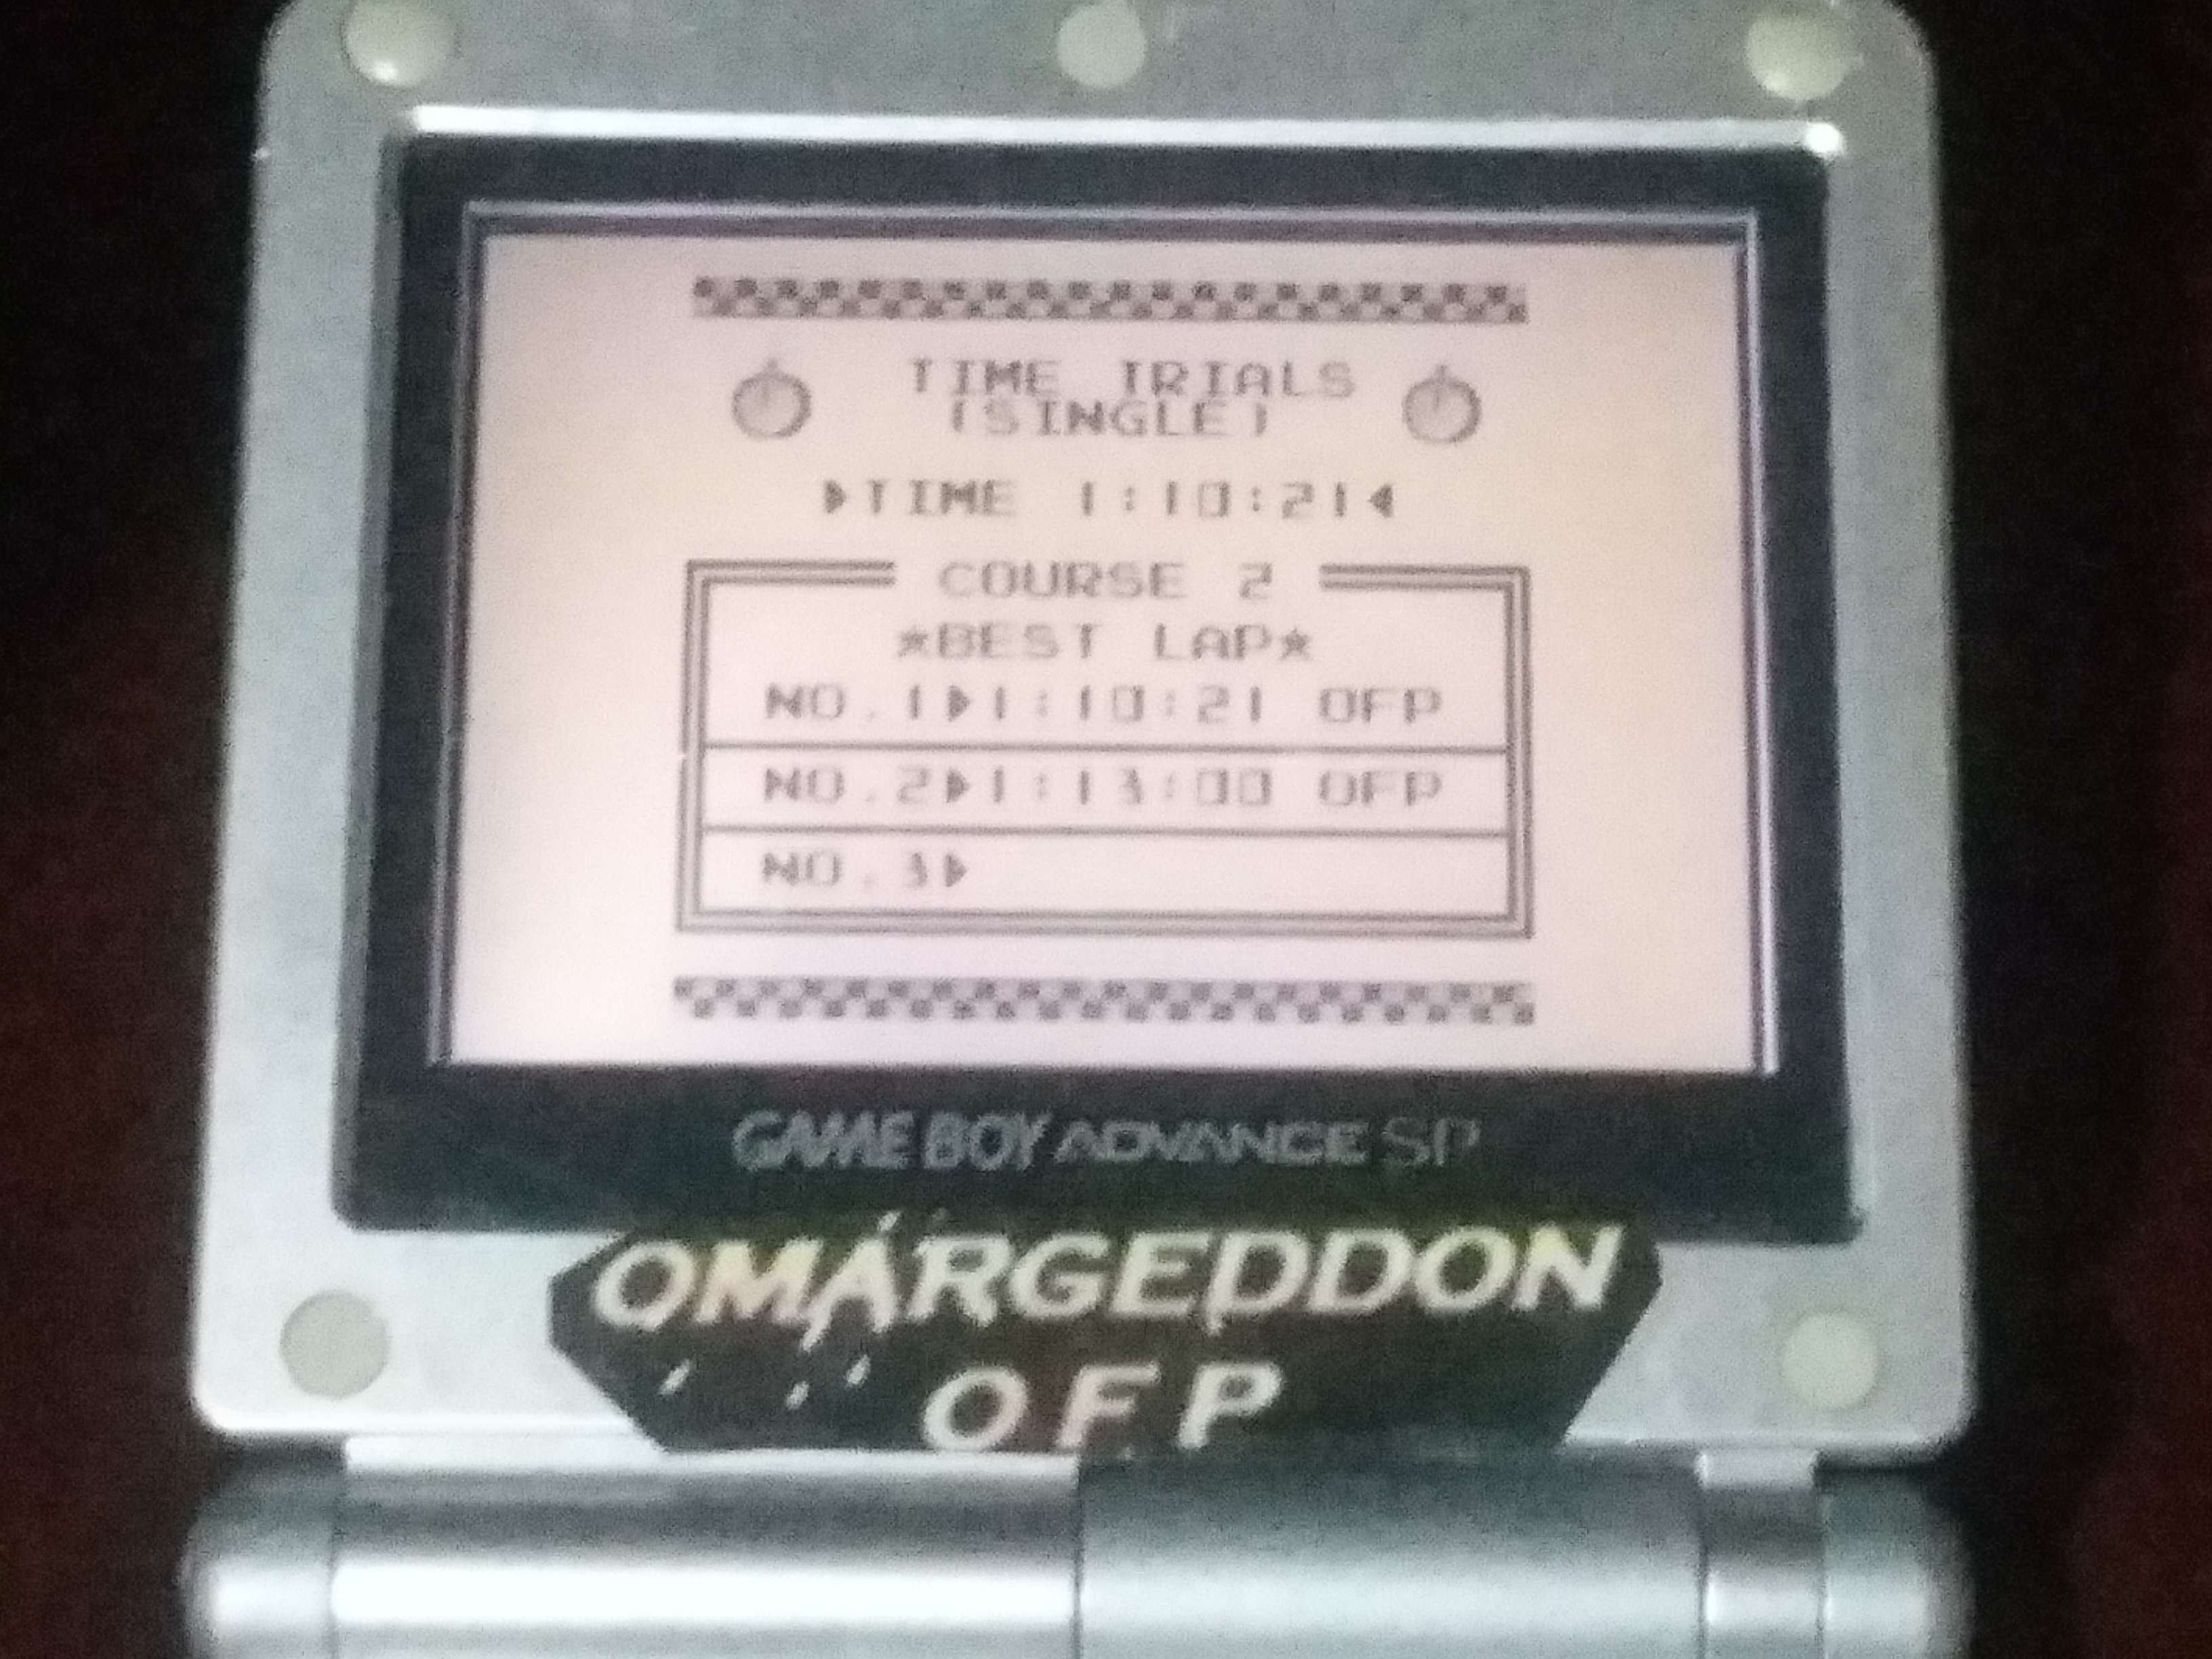 omargeddon: F-1 Race: Time Trials: Single: Canada [Best Lap] (Game Boy) 0:01:10.21 points on 2018-01-05 17:36:47